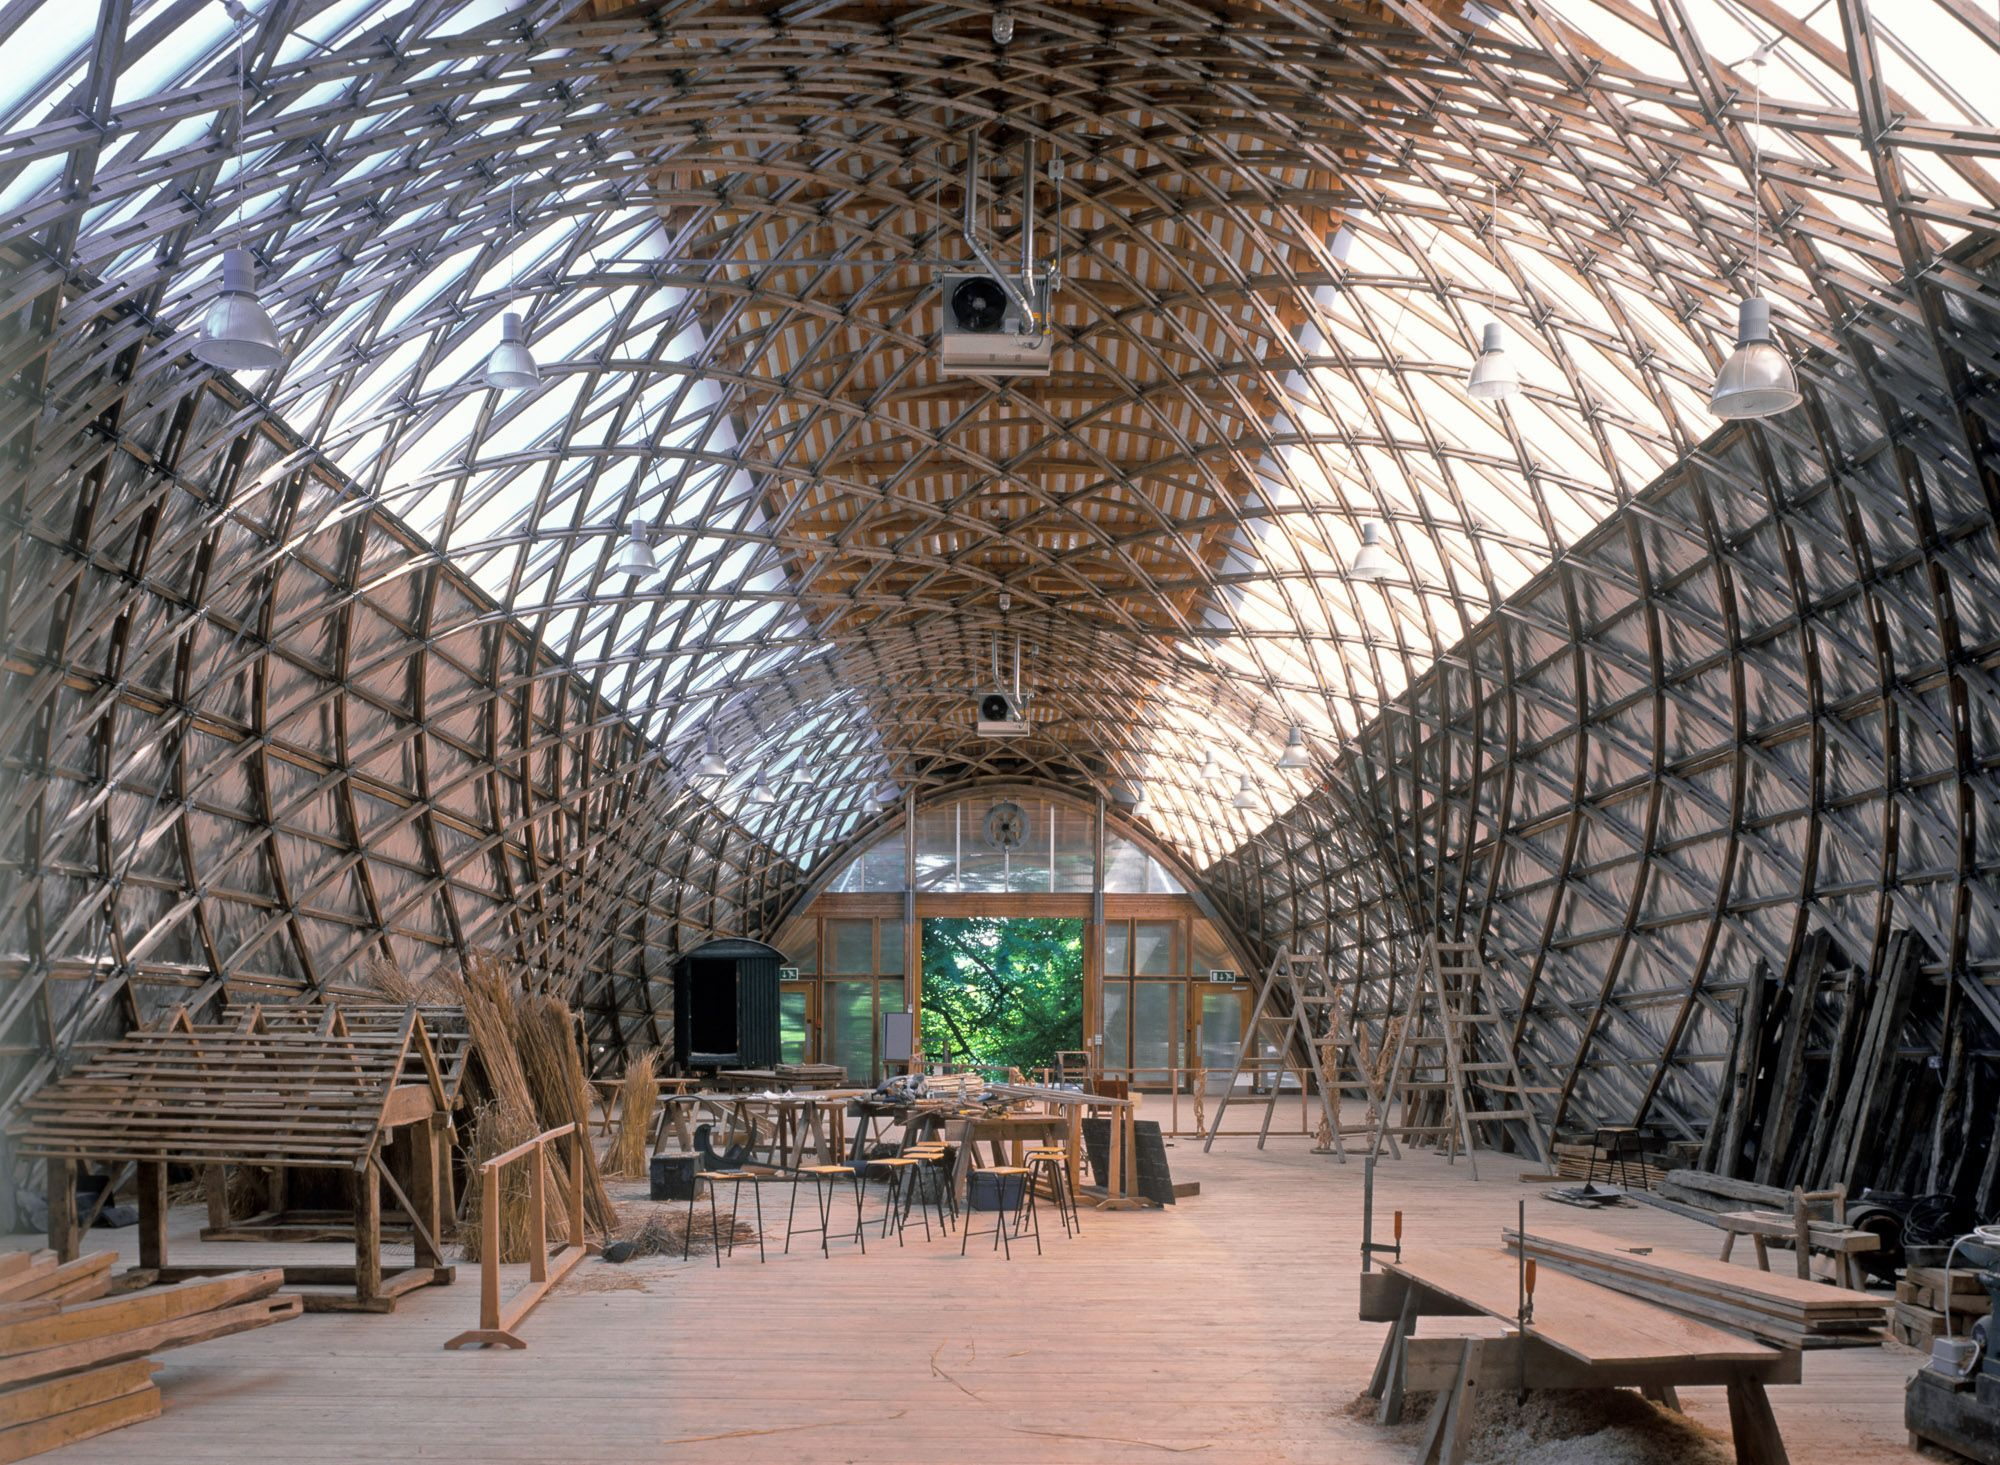 Nick Kane photography architecture Gridshell, Weald and